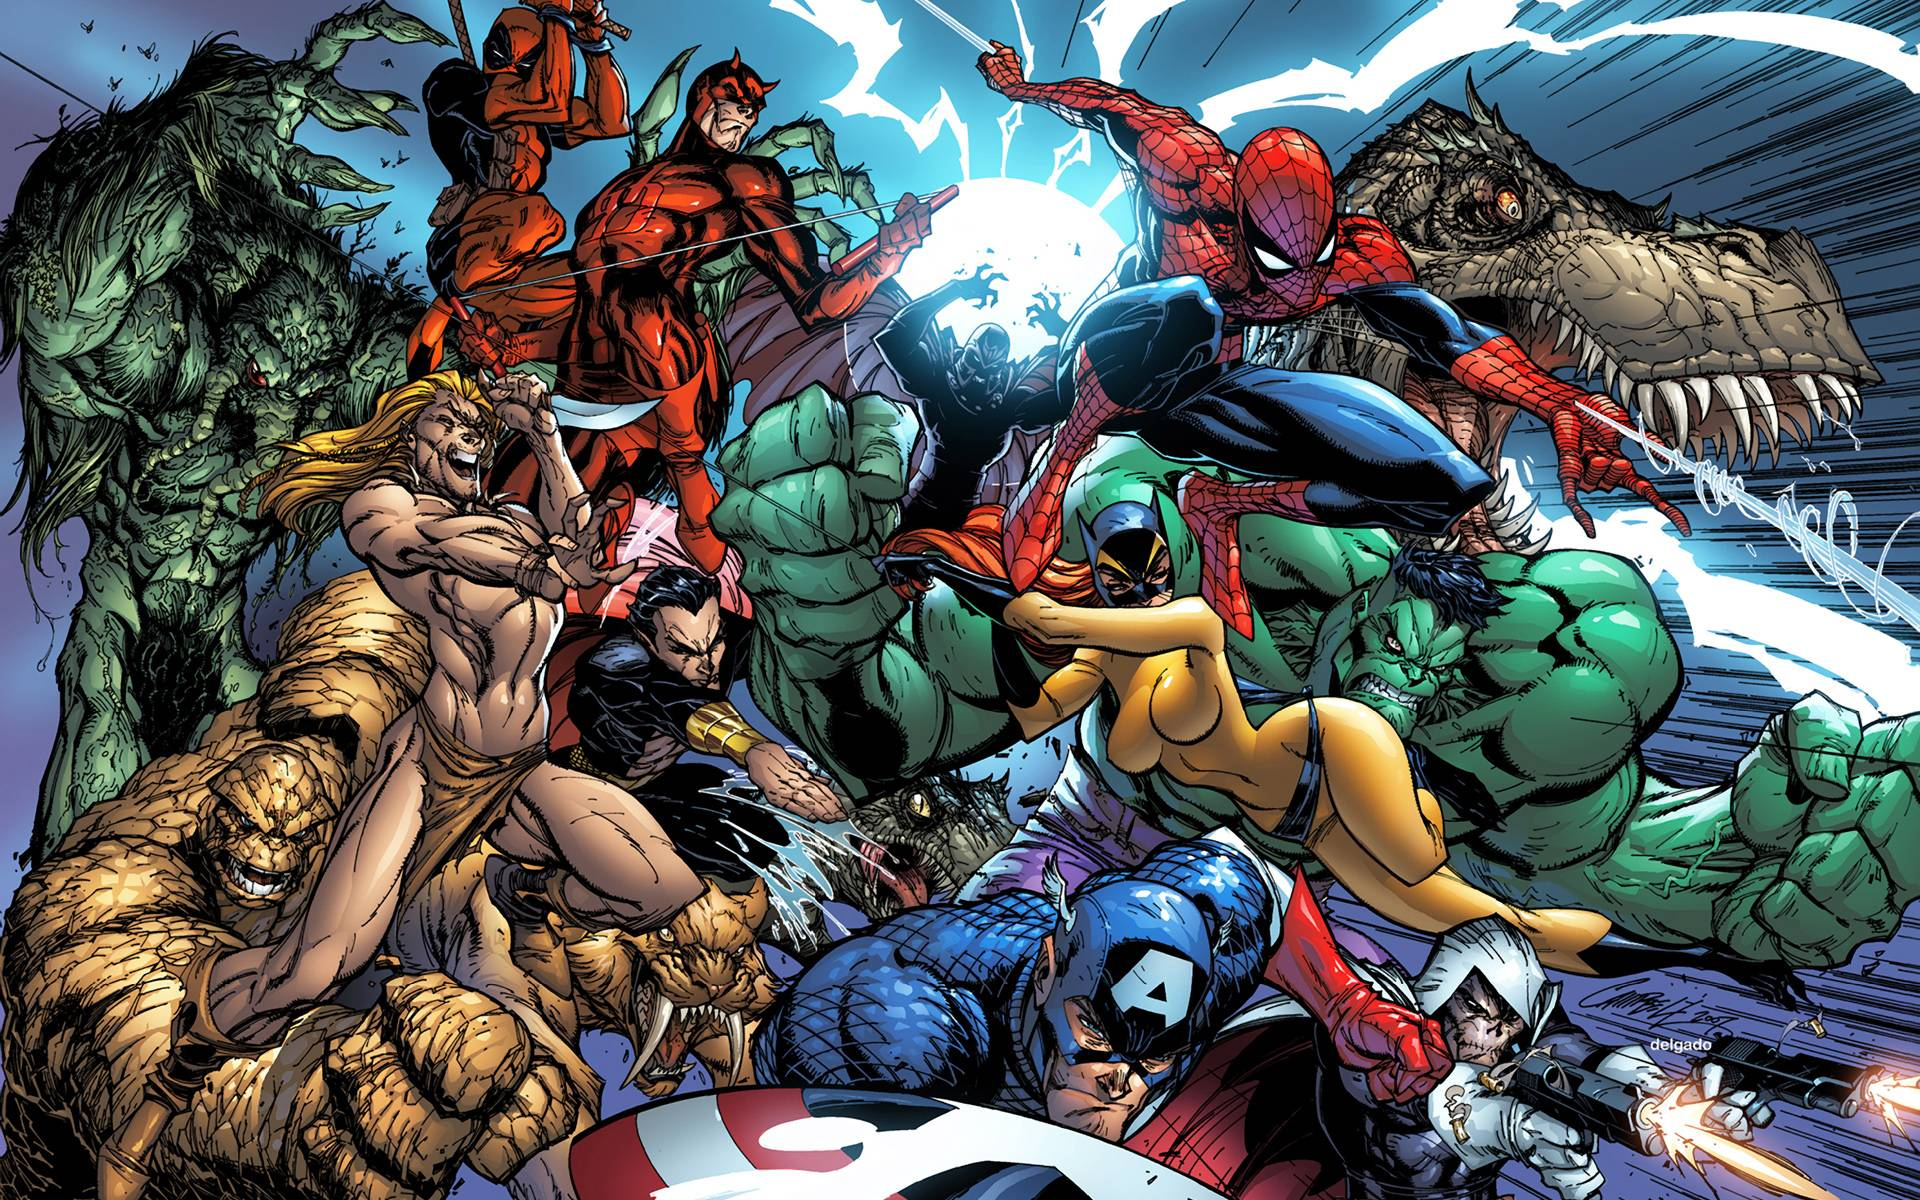 Cool Wallpaper Marvel High Resolution - 8oG4DbU  Trends_472182.jpg